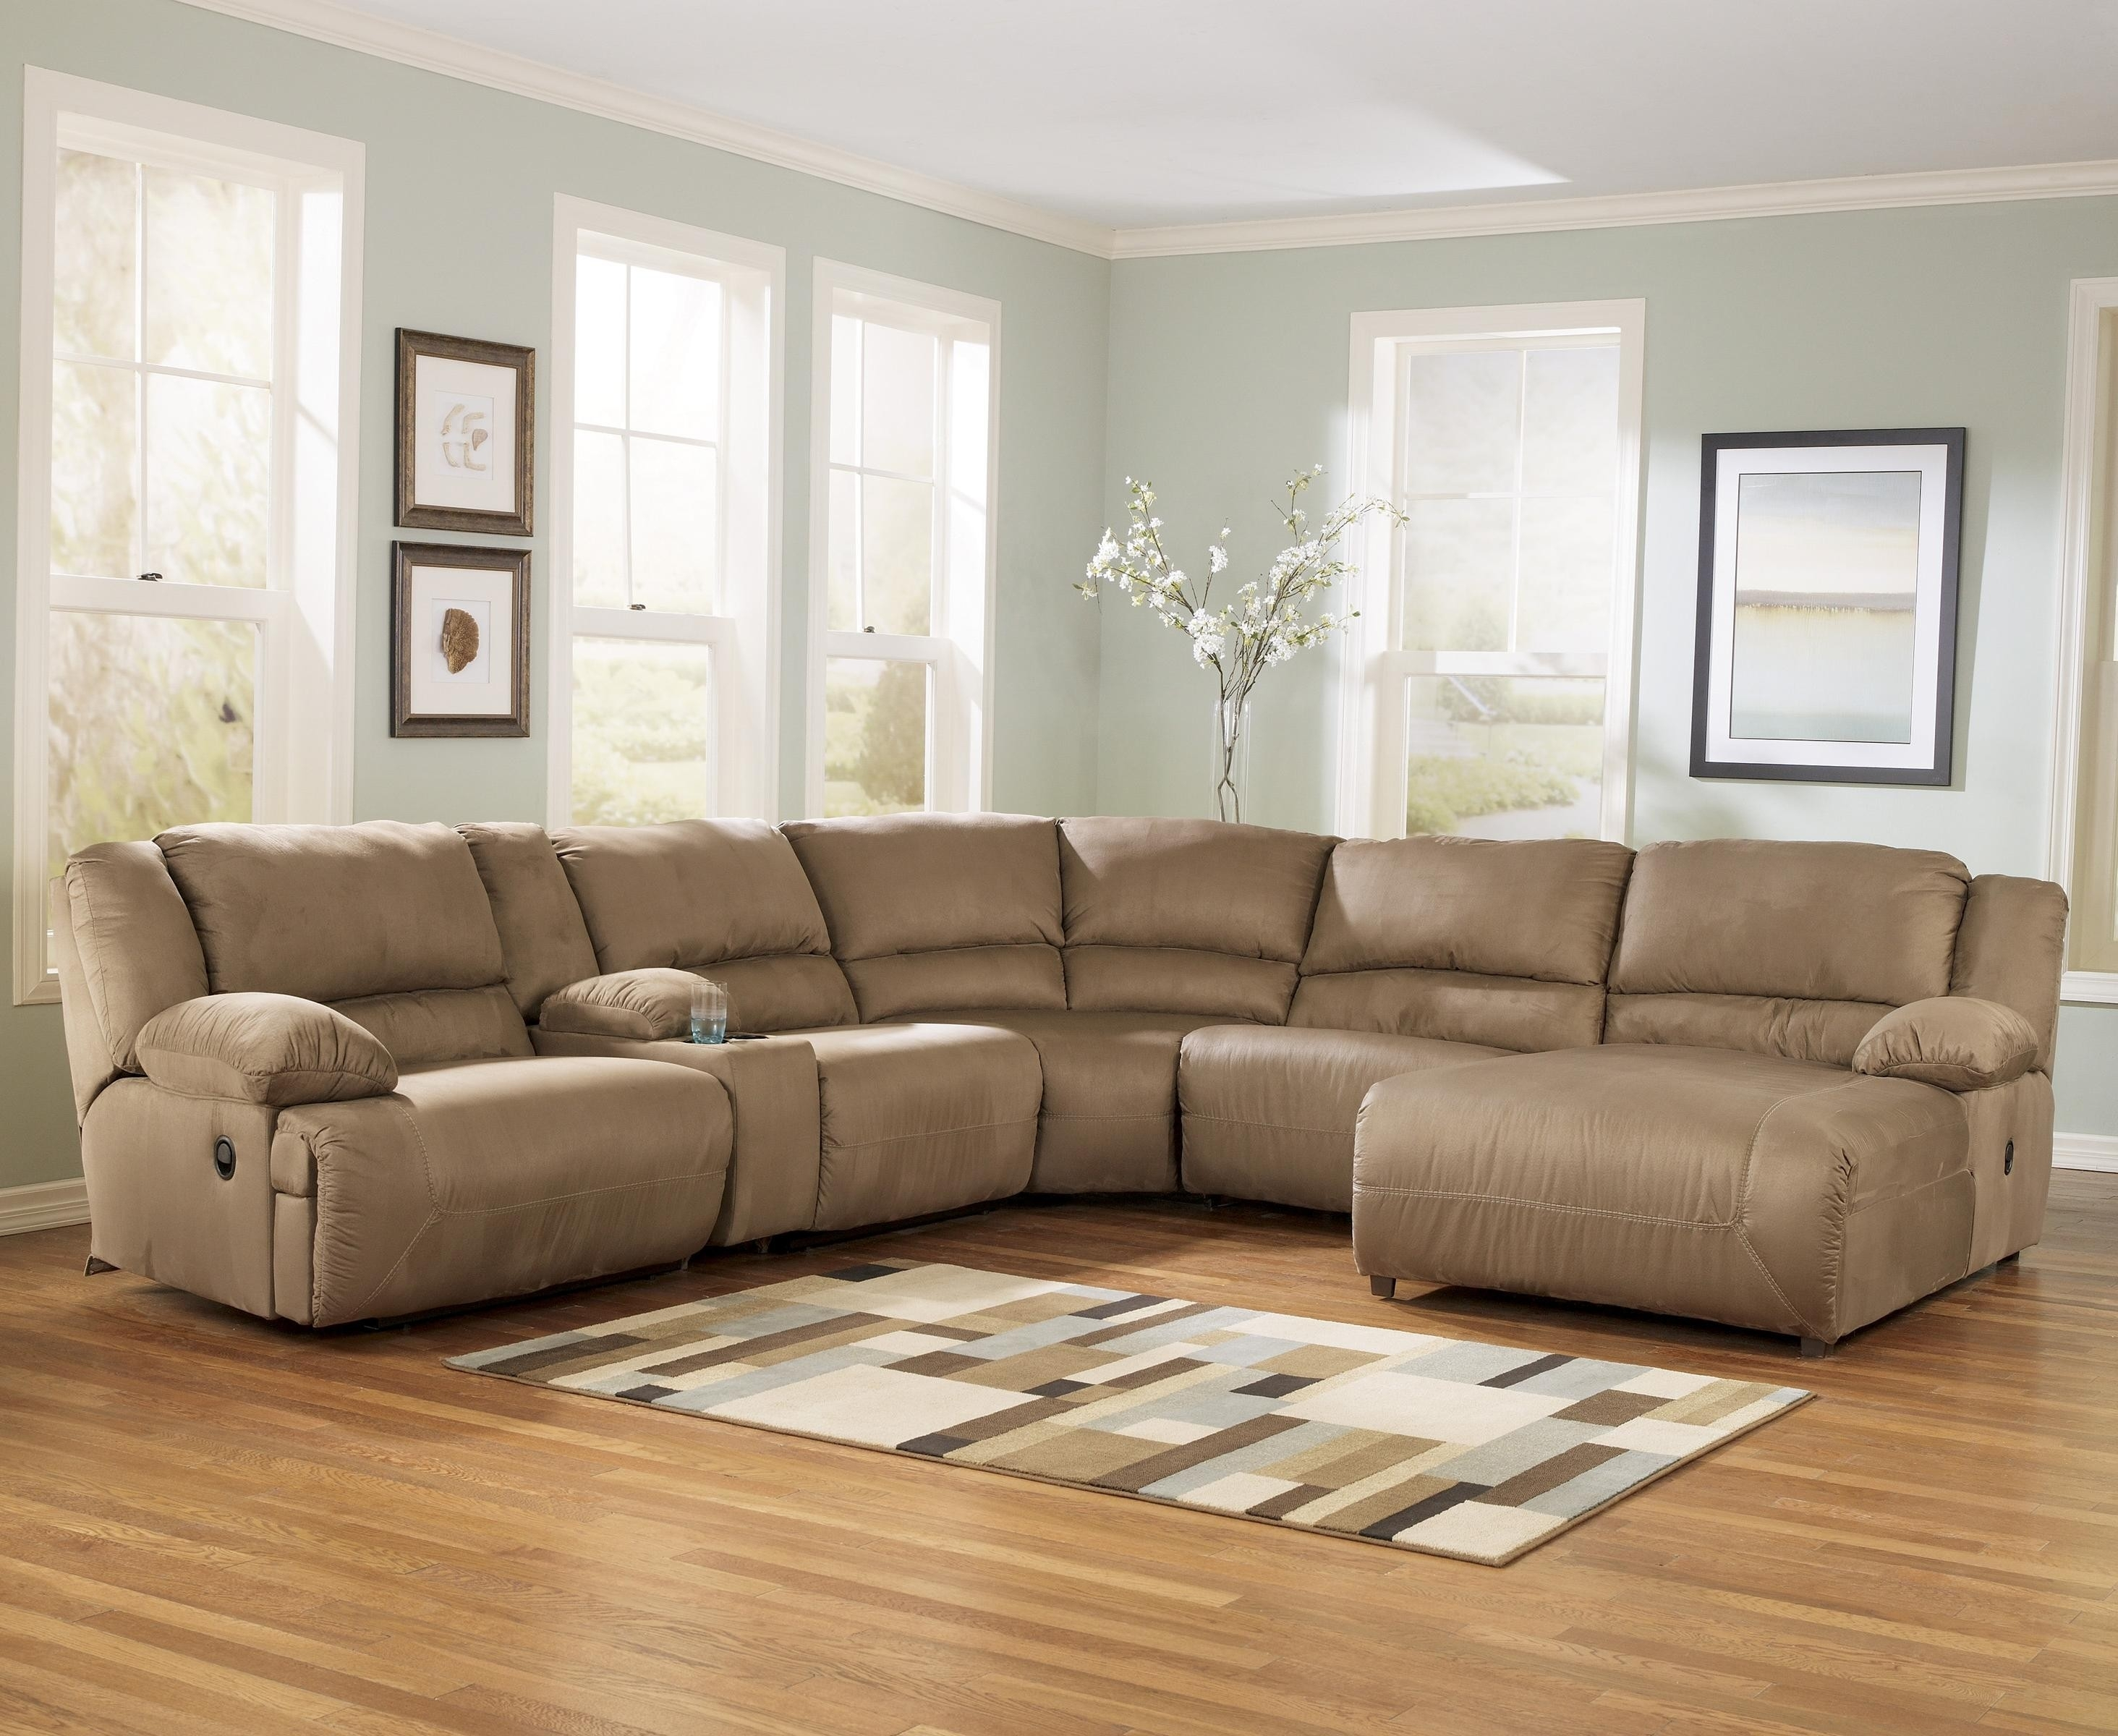 6 Piece Sectional Couch Marcus Grey W Power Headrest Usb Living Intended For Marcus Grey 6 Piece Sectionals With Power Headrest & Usb (View 21 of 25)